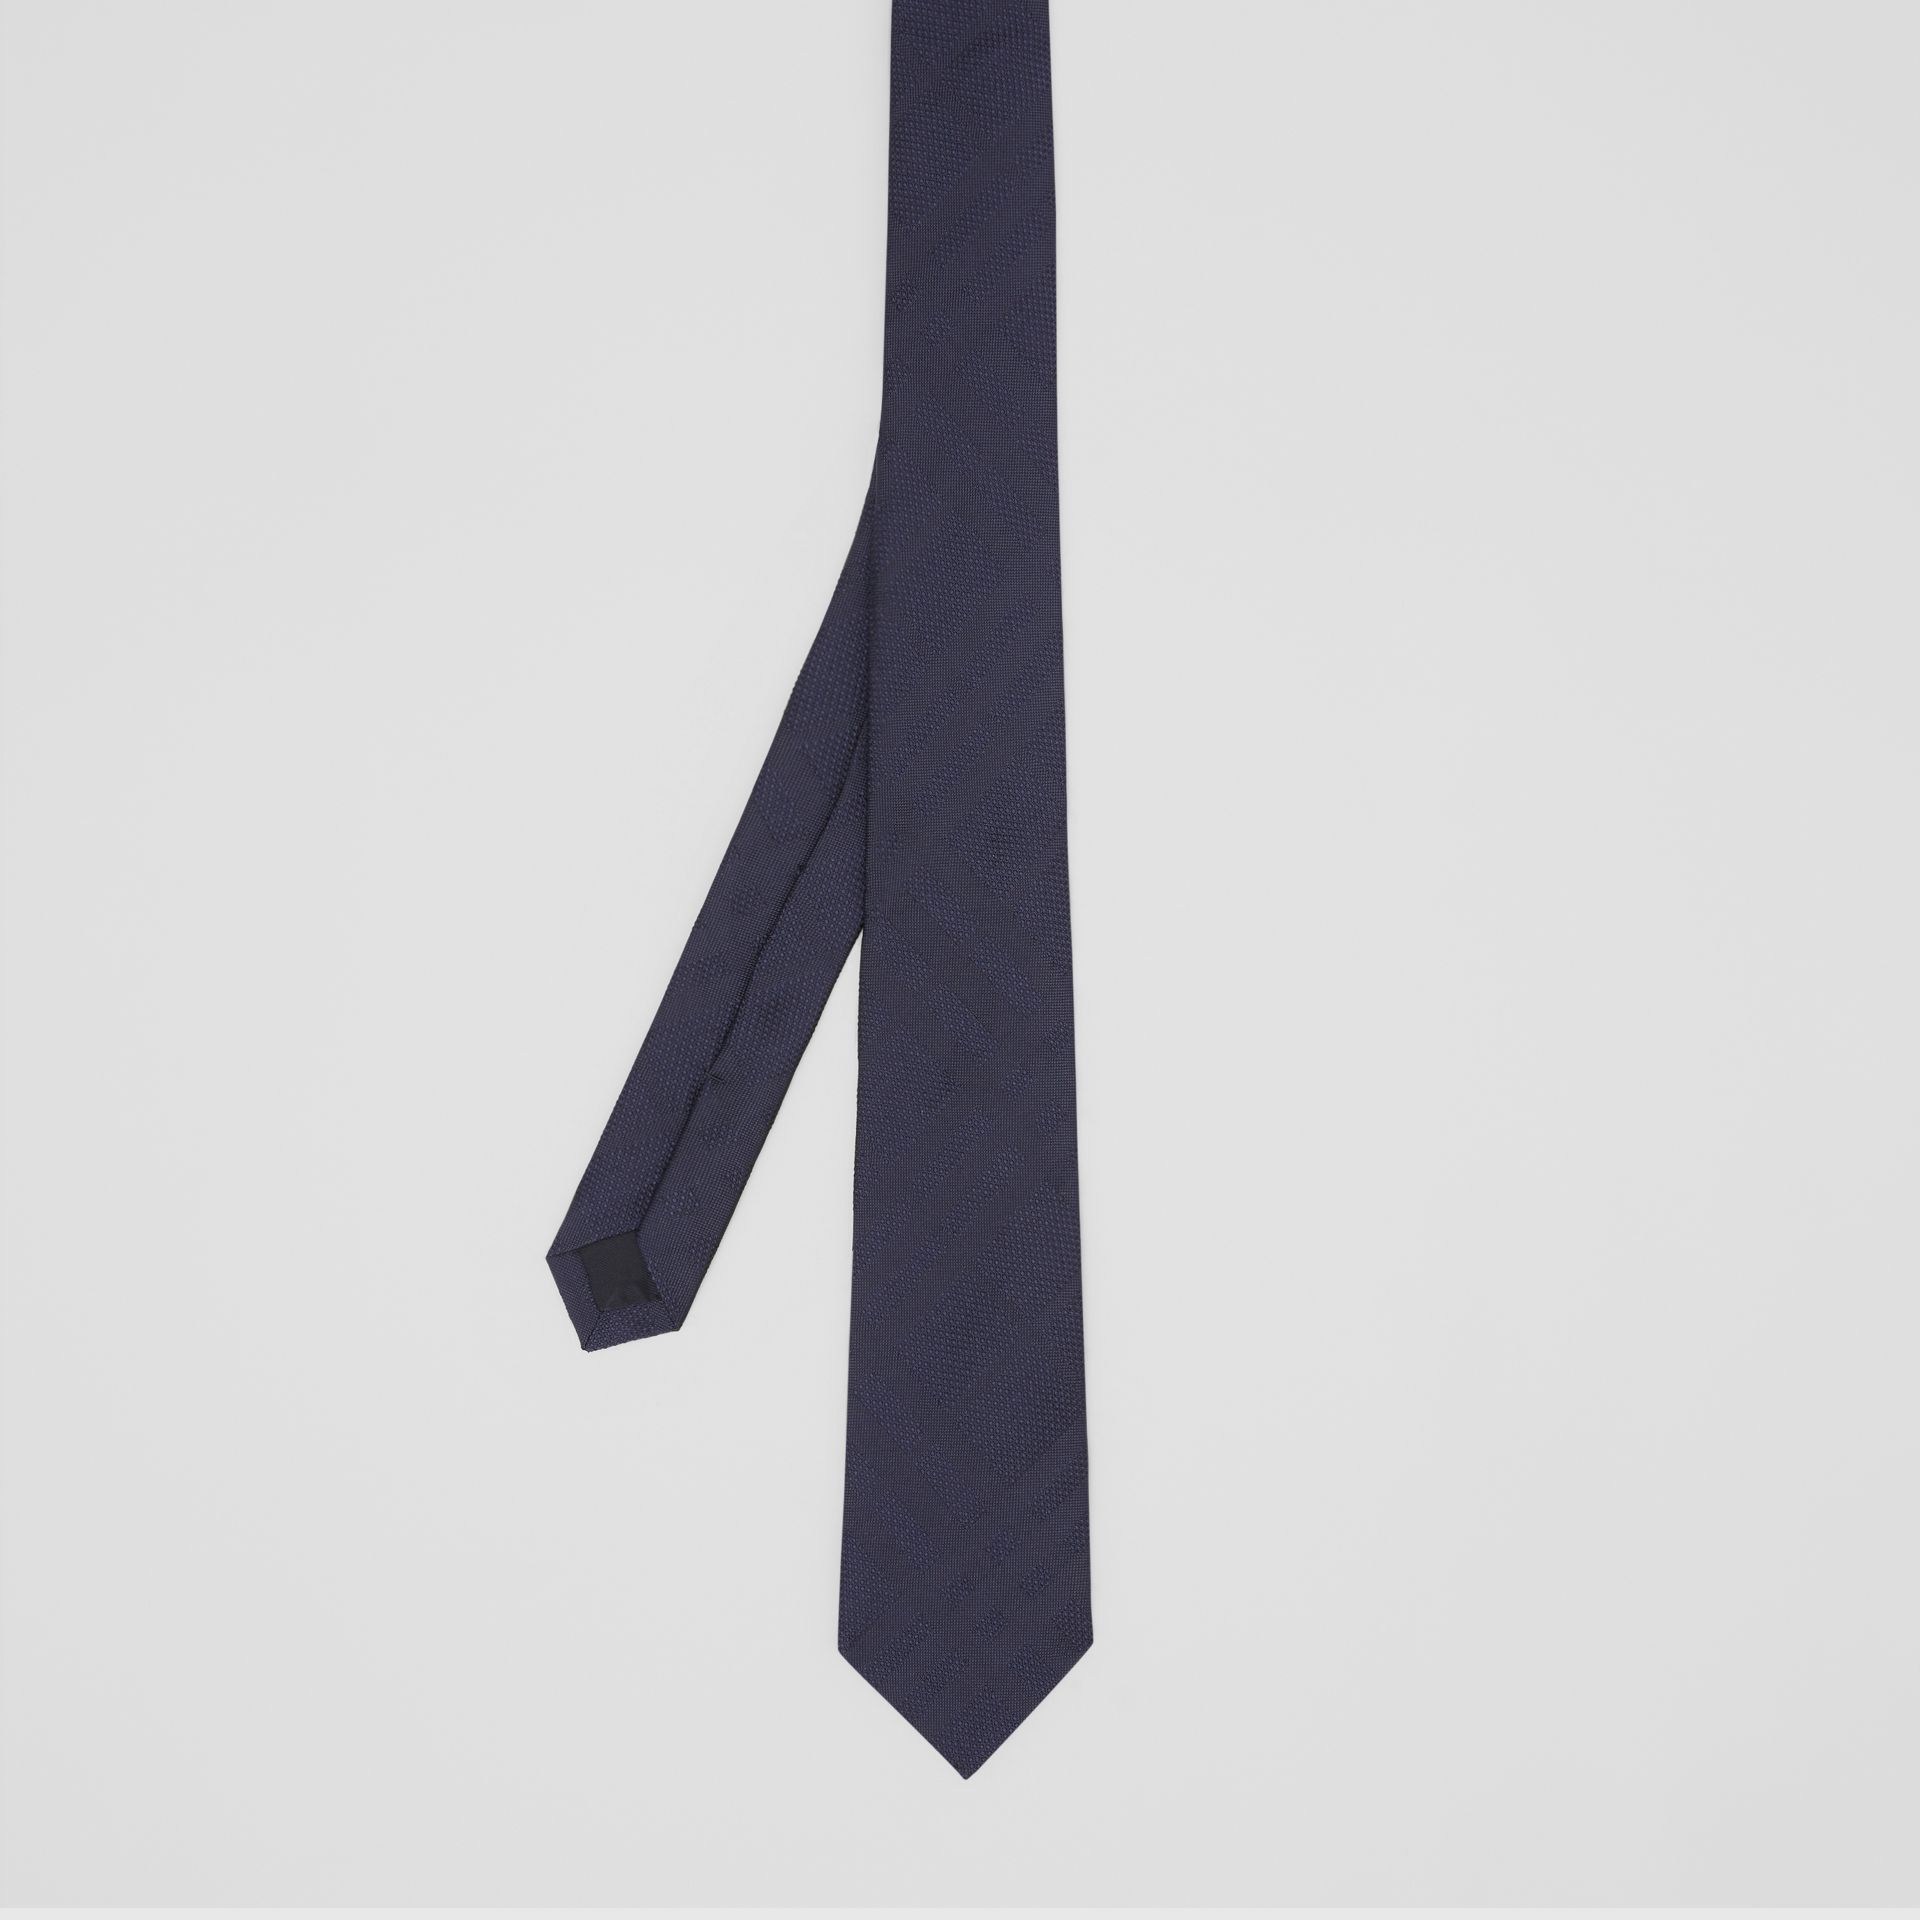 Classic Cut Check Silk Jacquard Tie in Navy - Men | Burberry Canada - gallery image 4